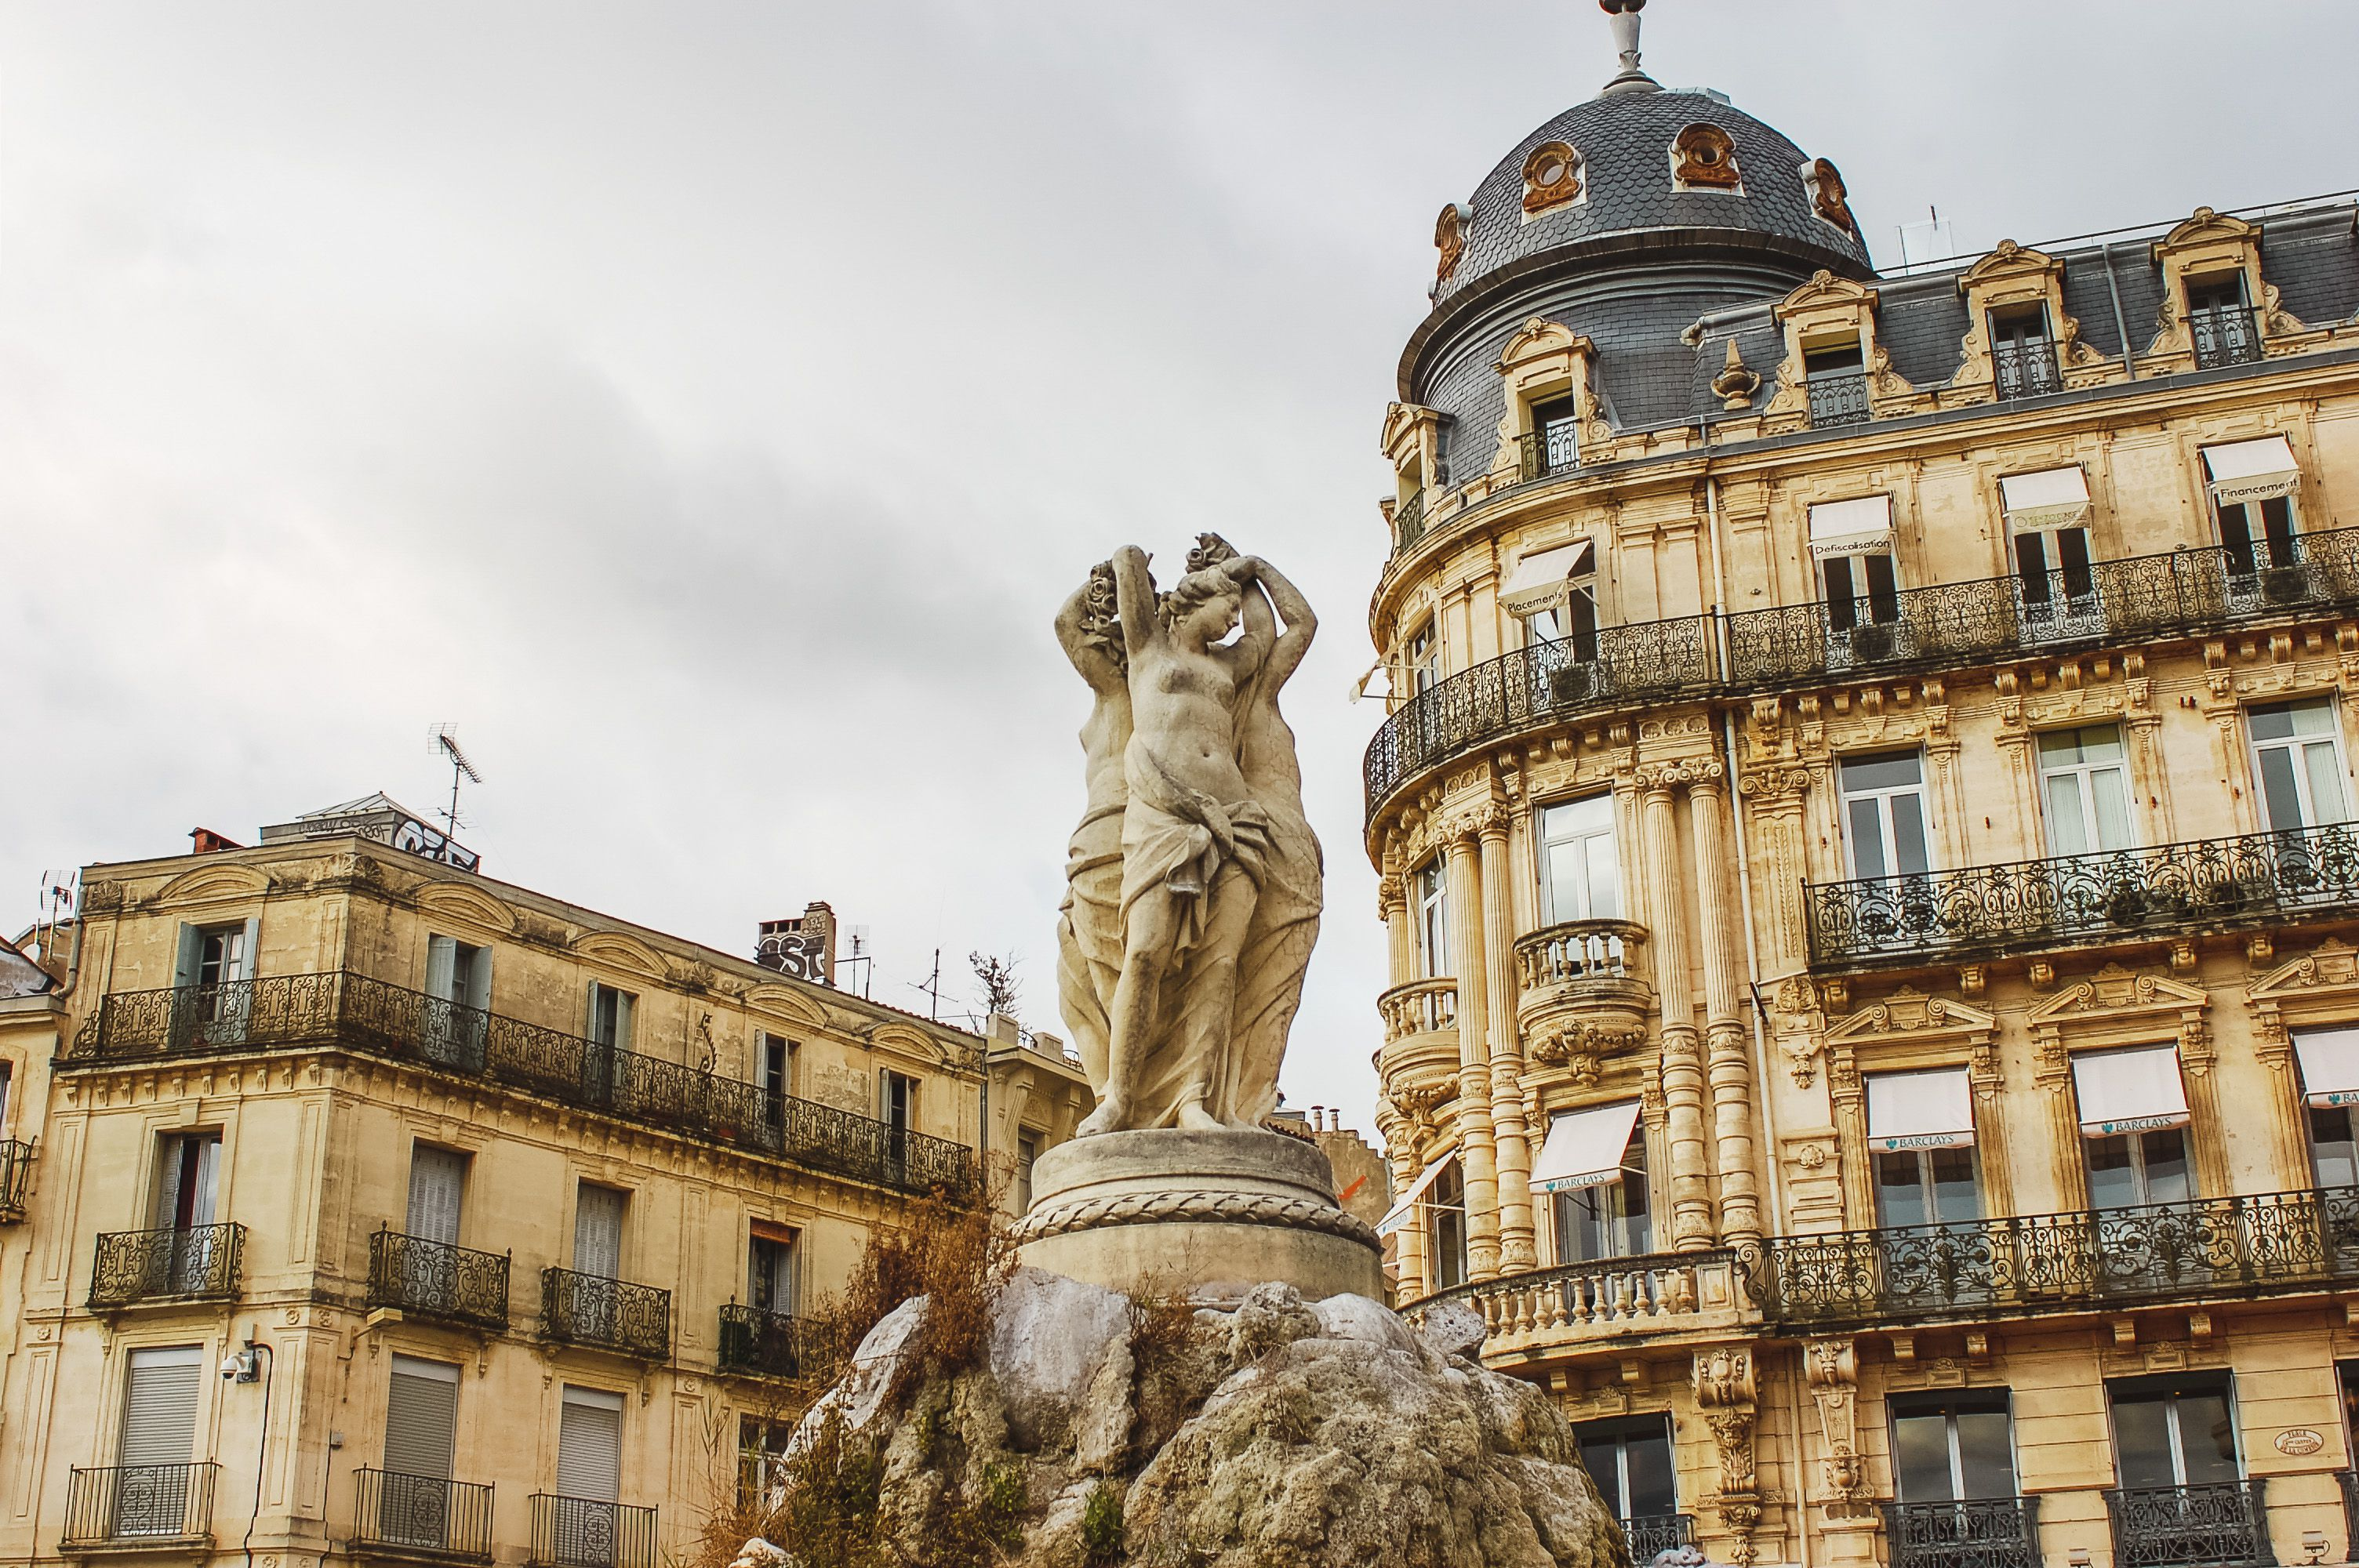 Statues in Montpellier